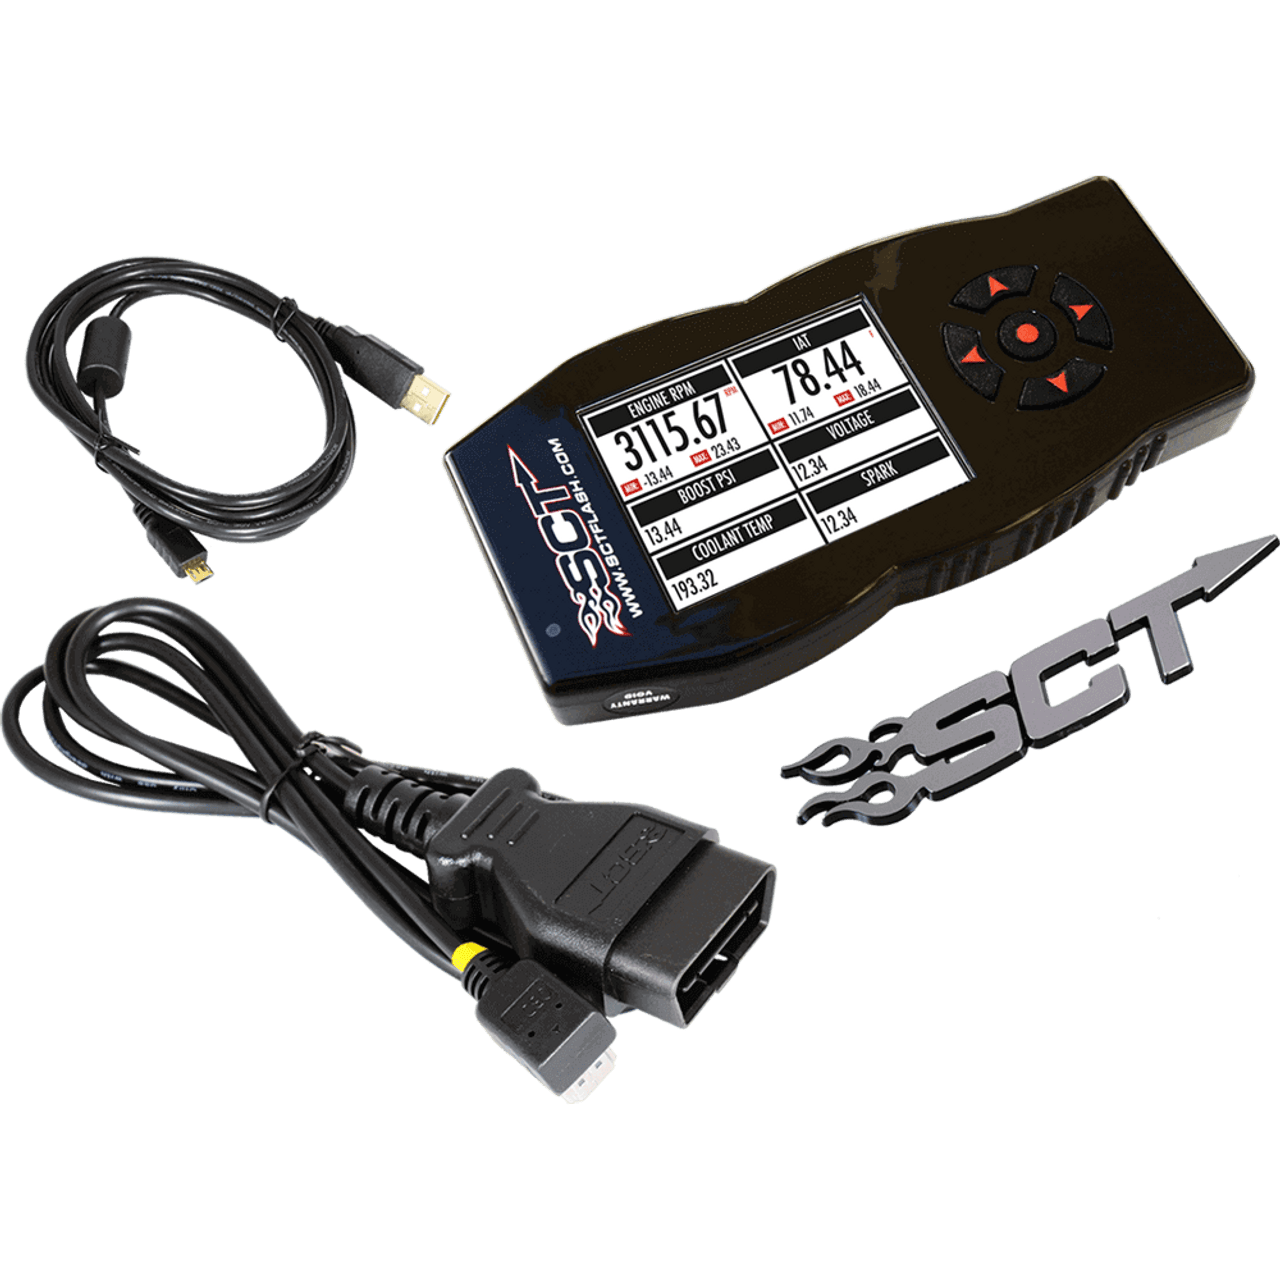 SCT 7015 X4 Performance Programmer For Ford Cars & Trucks